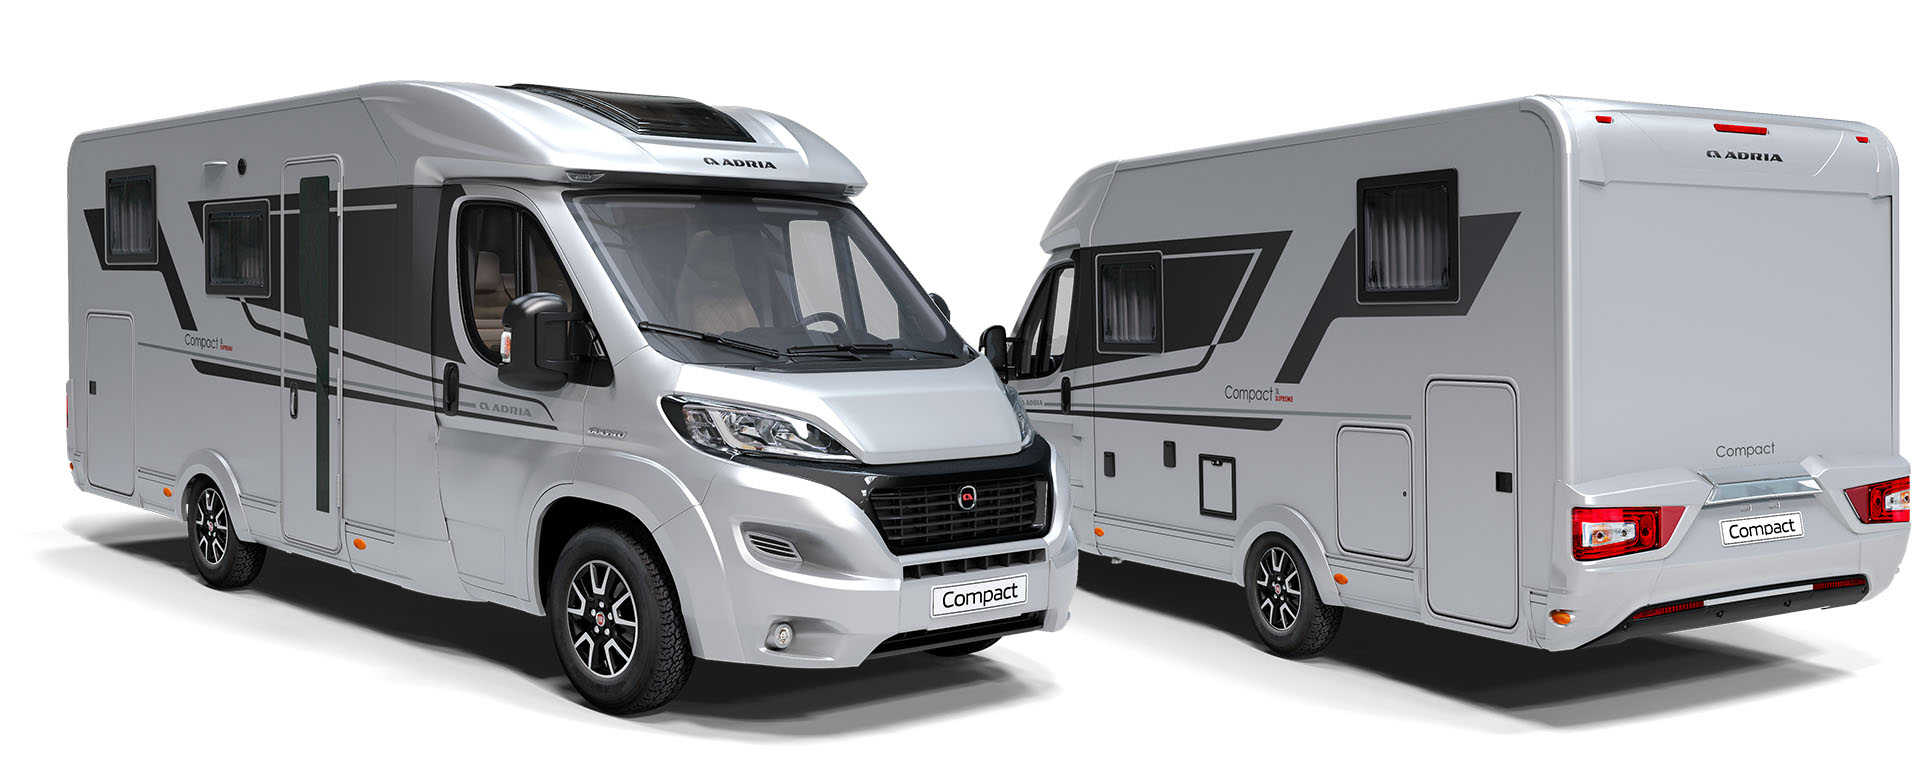 Compact — Adria Mobil